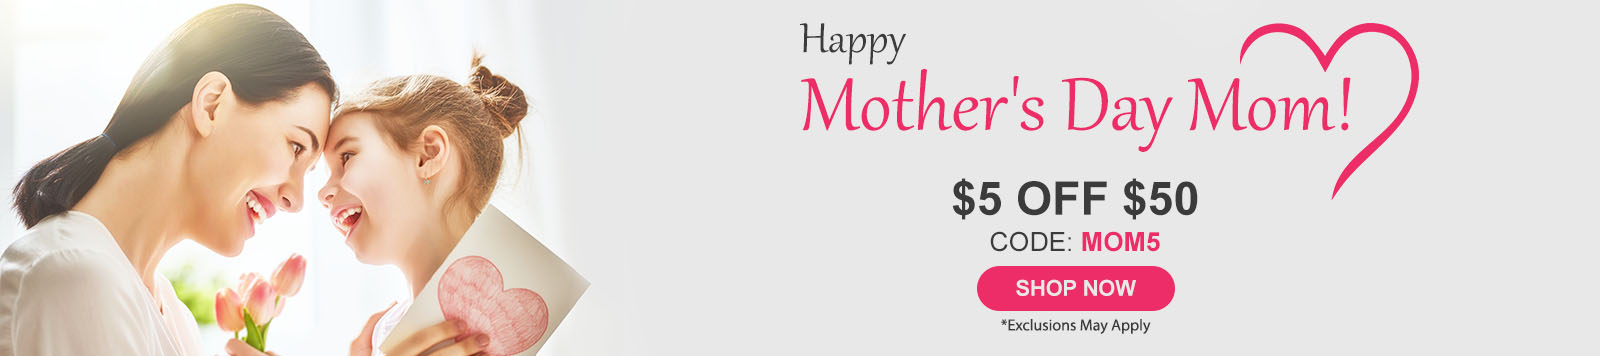 HPFY Mothers Day Sale